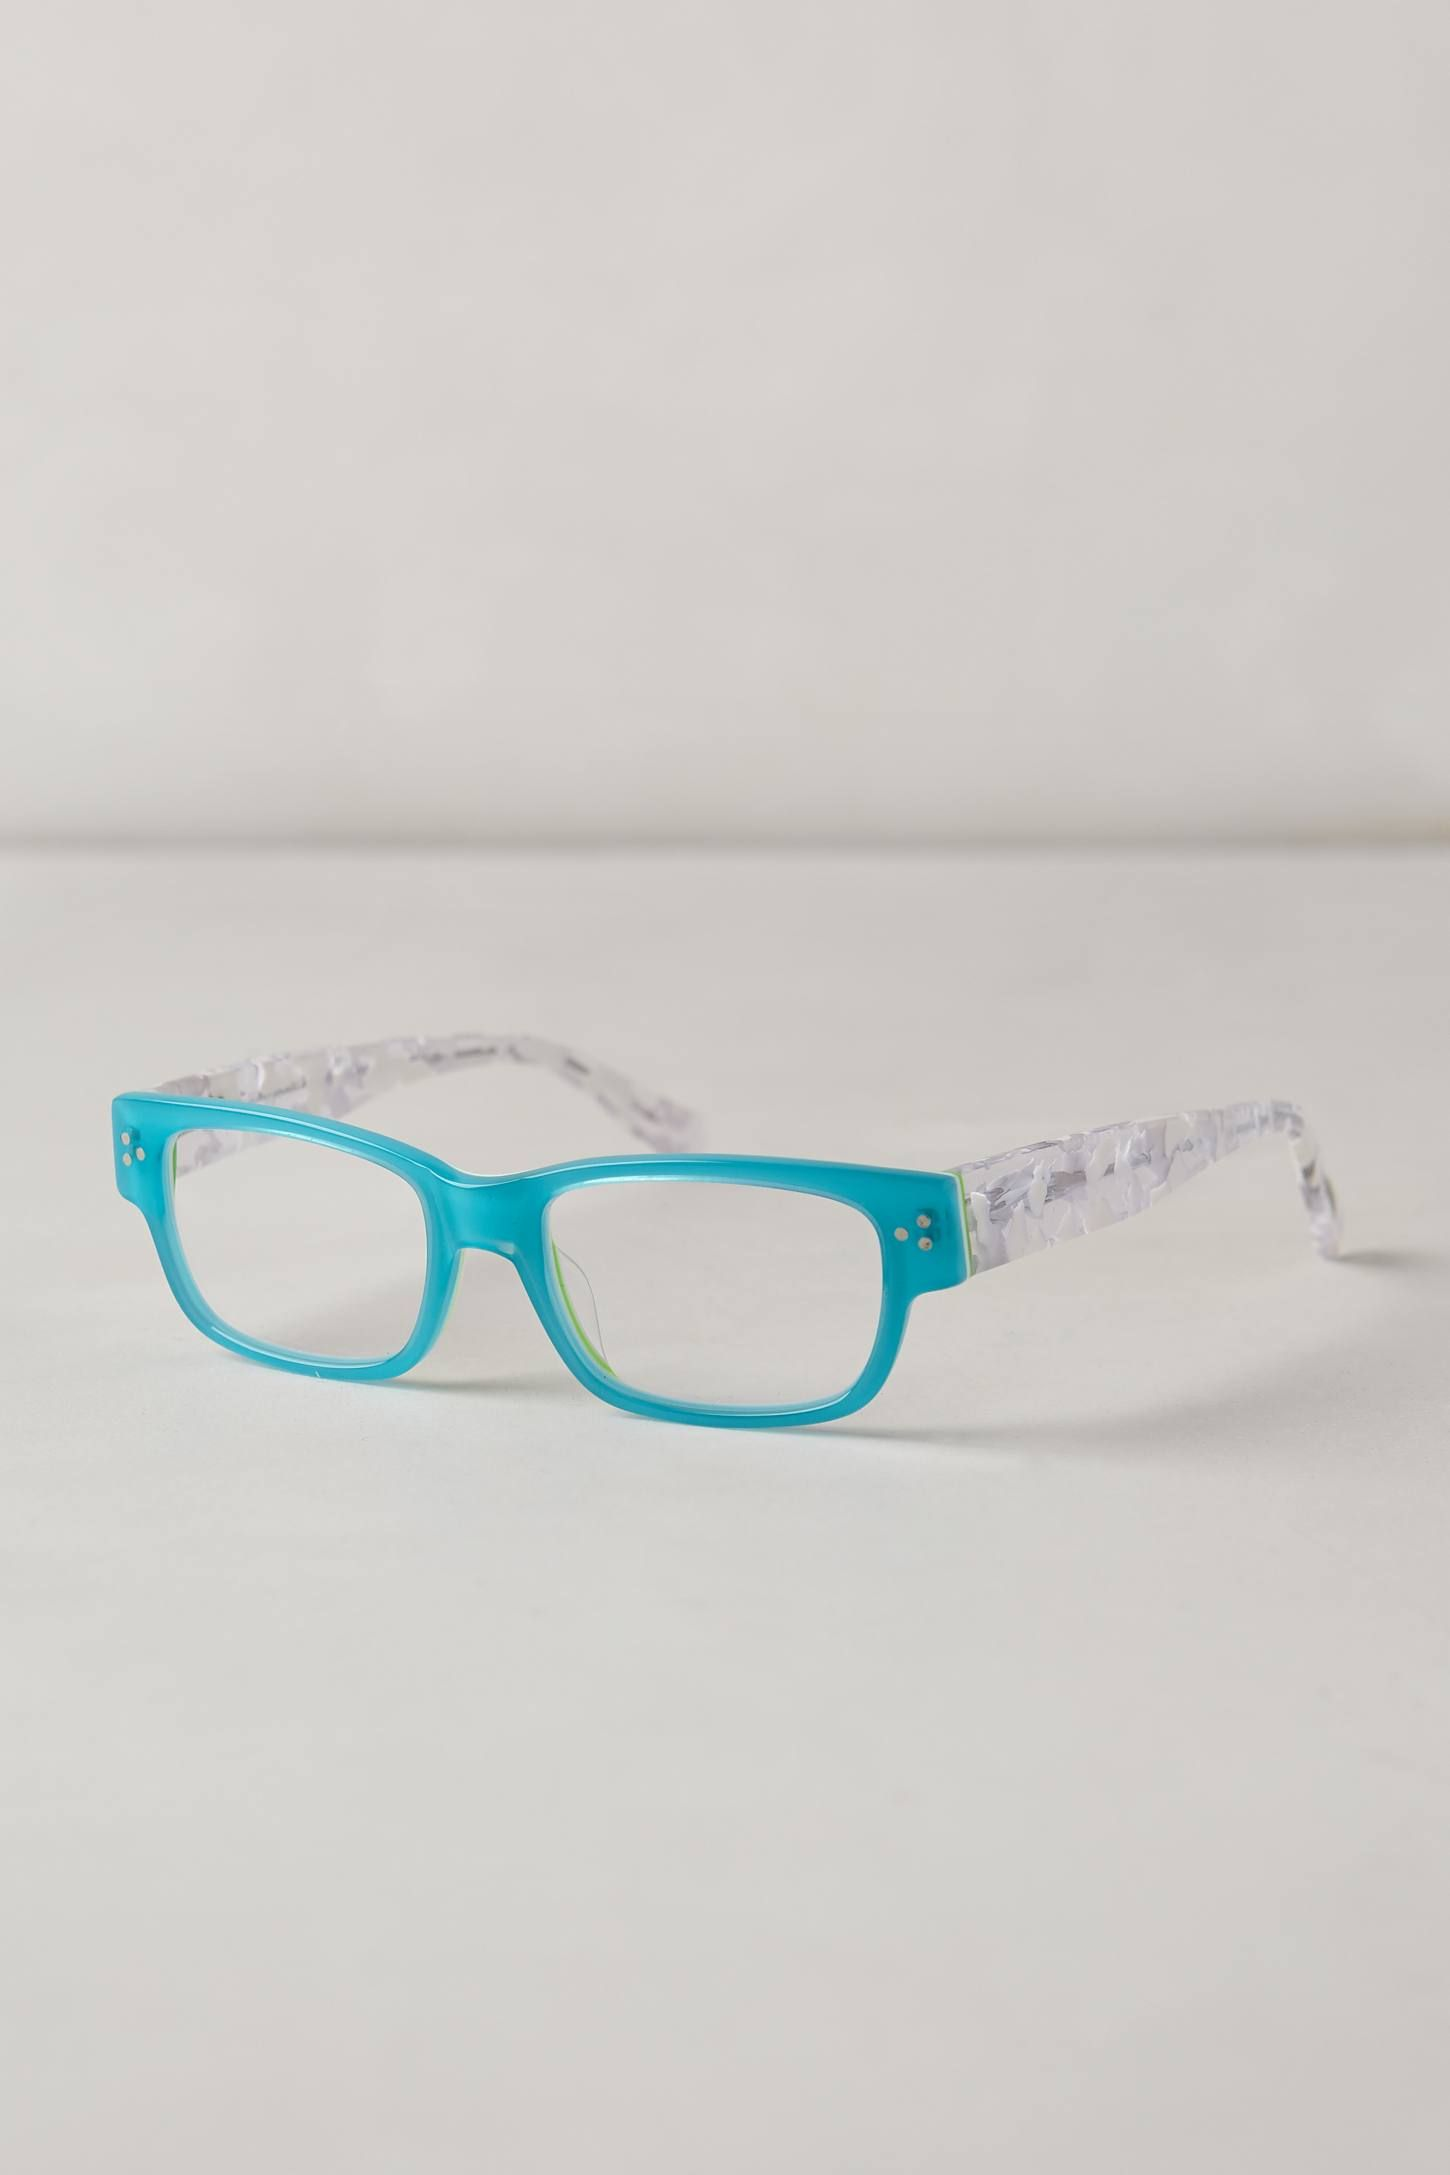 03706755524 Eyebobs Turquoise Reading Glasses - anthropologie.com